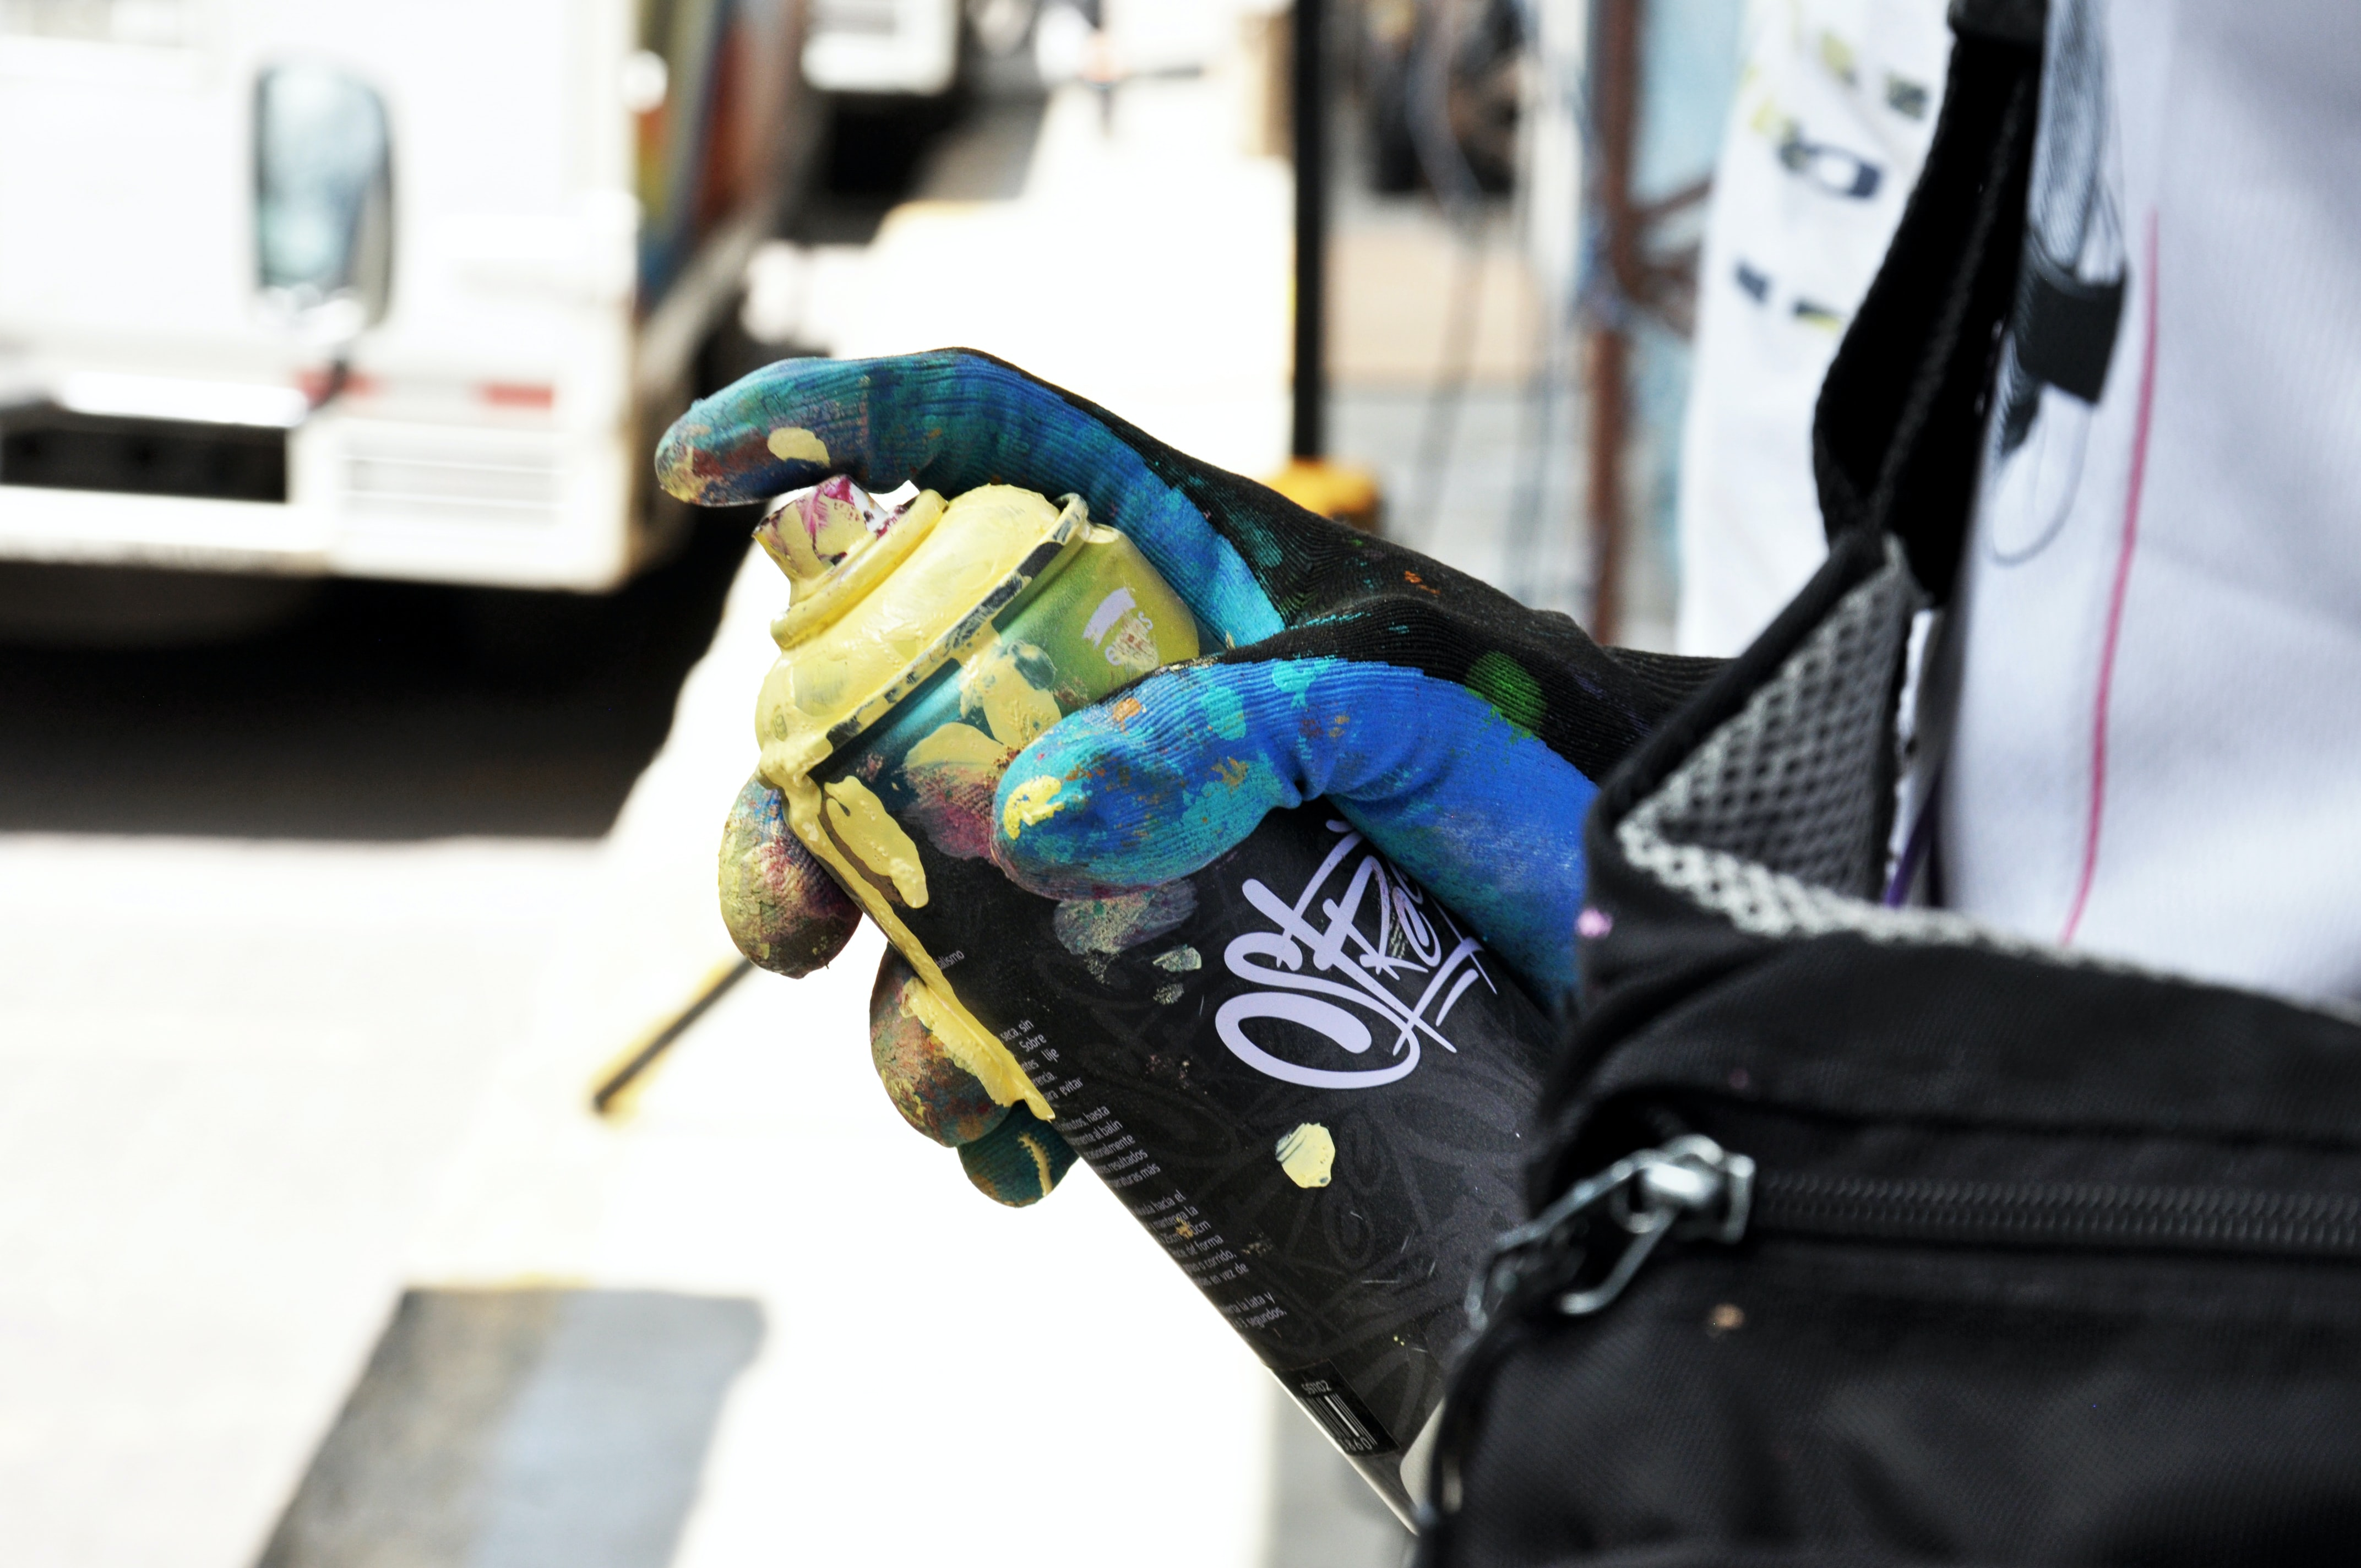 person holding black and yellow spray bottle